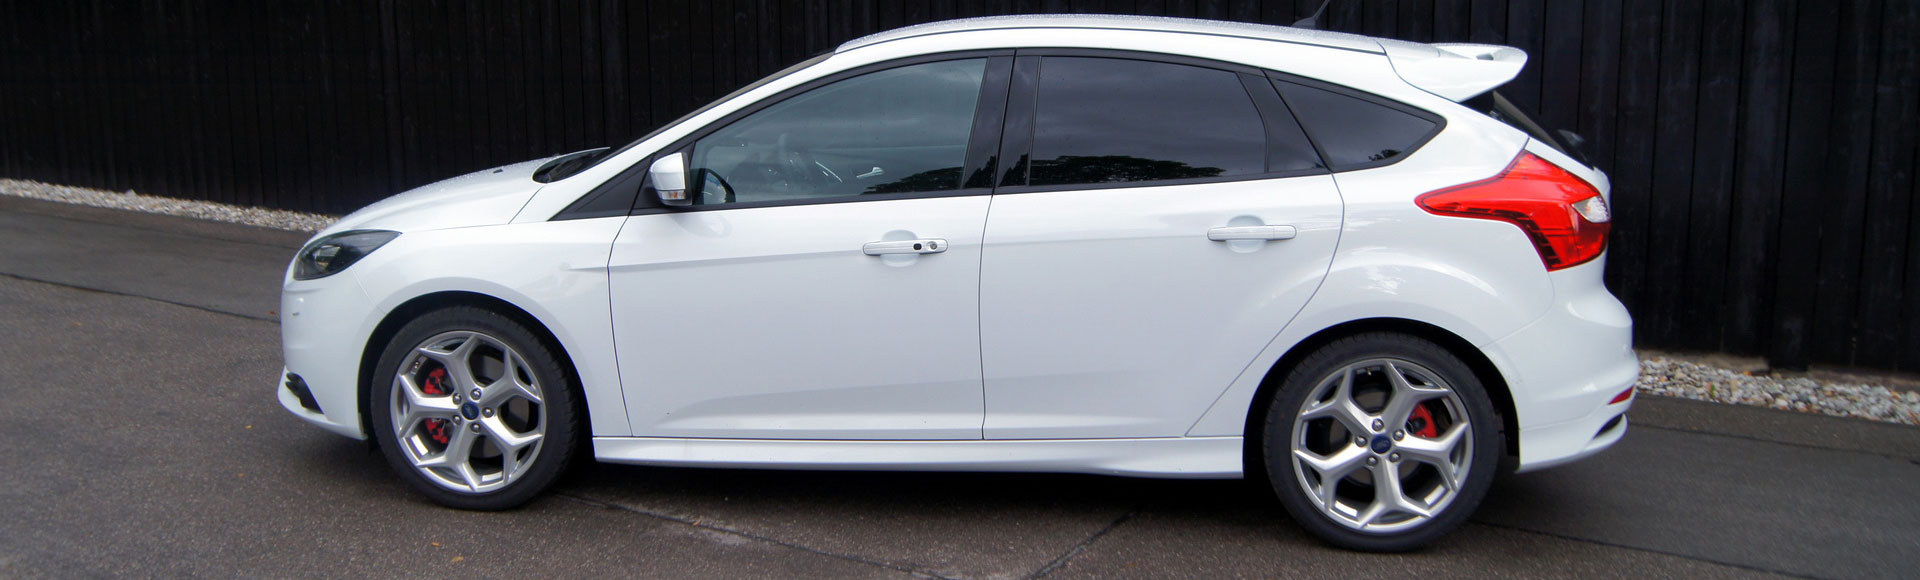 Ford Focus ST 2014 Herbst 8134